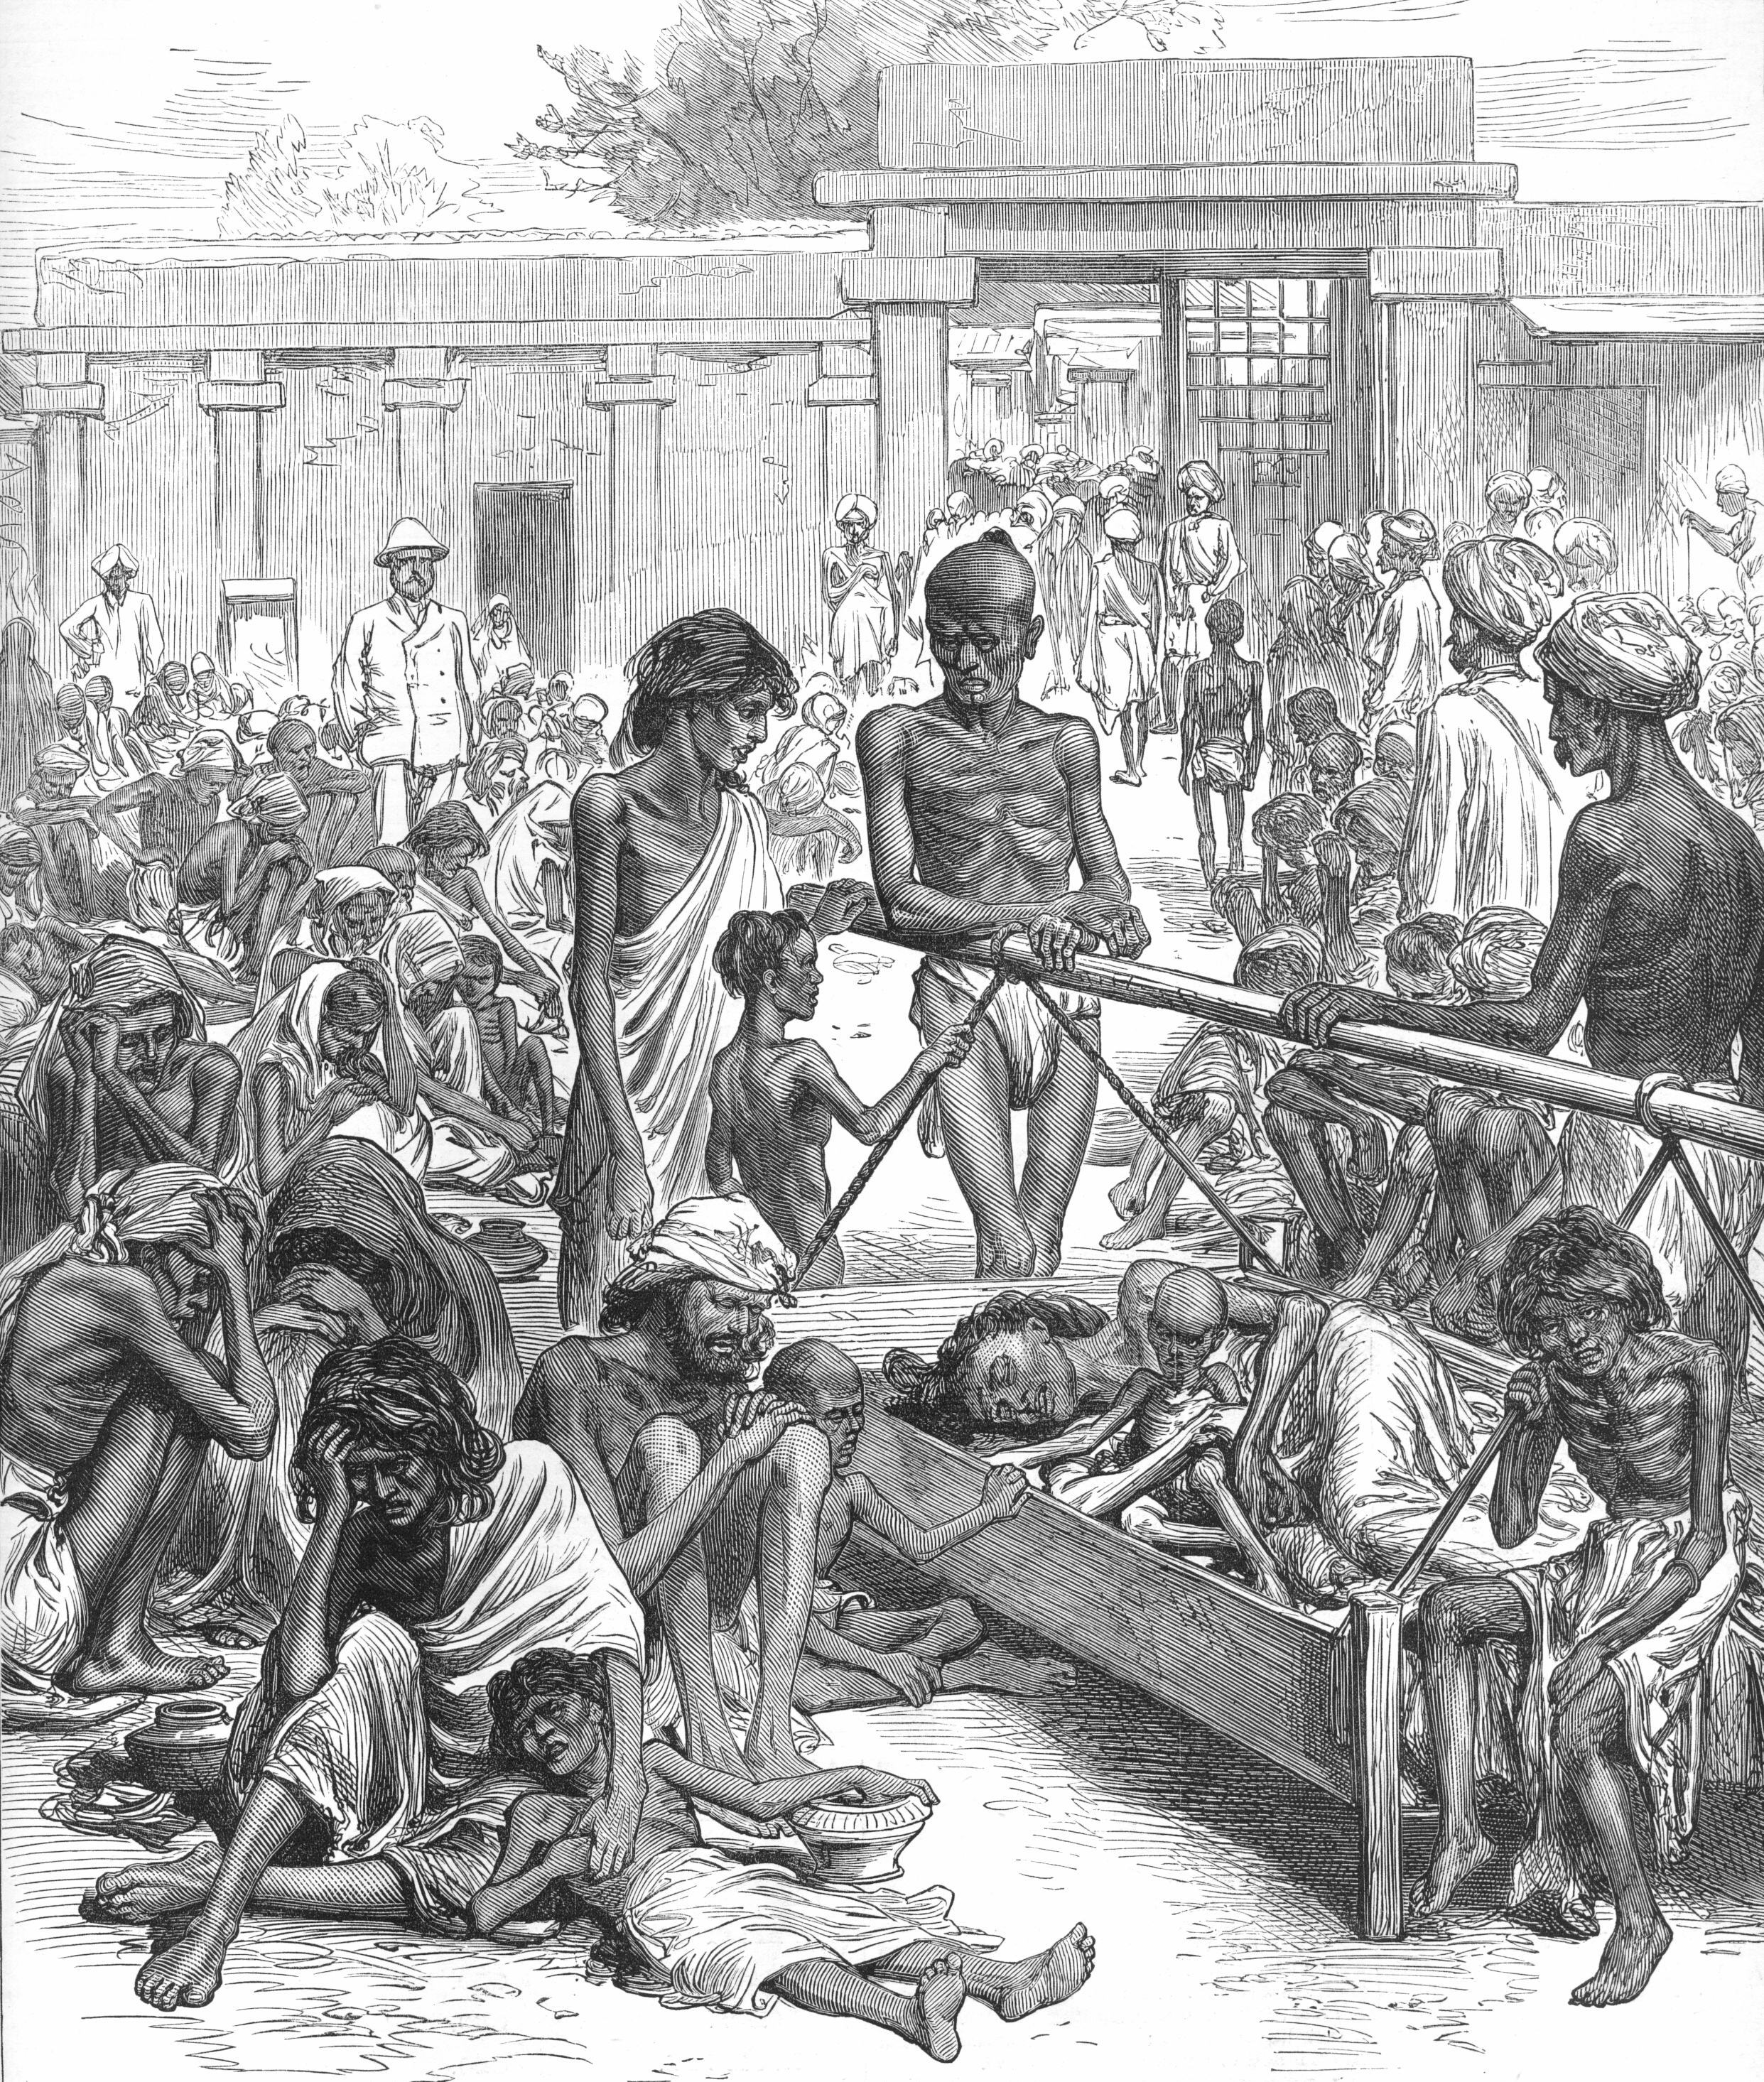 What was the social condition of india before independence?